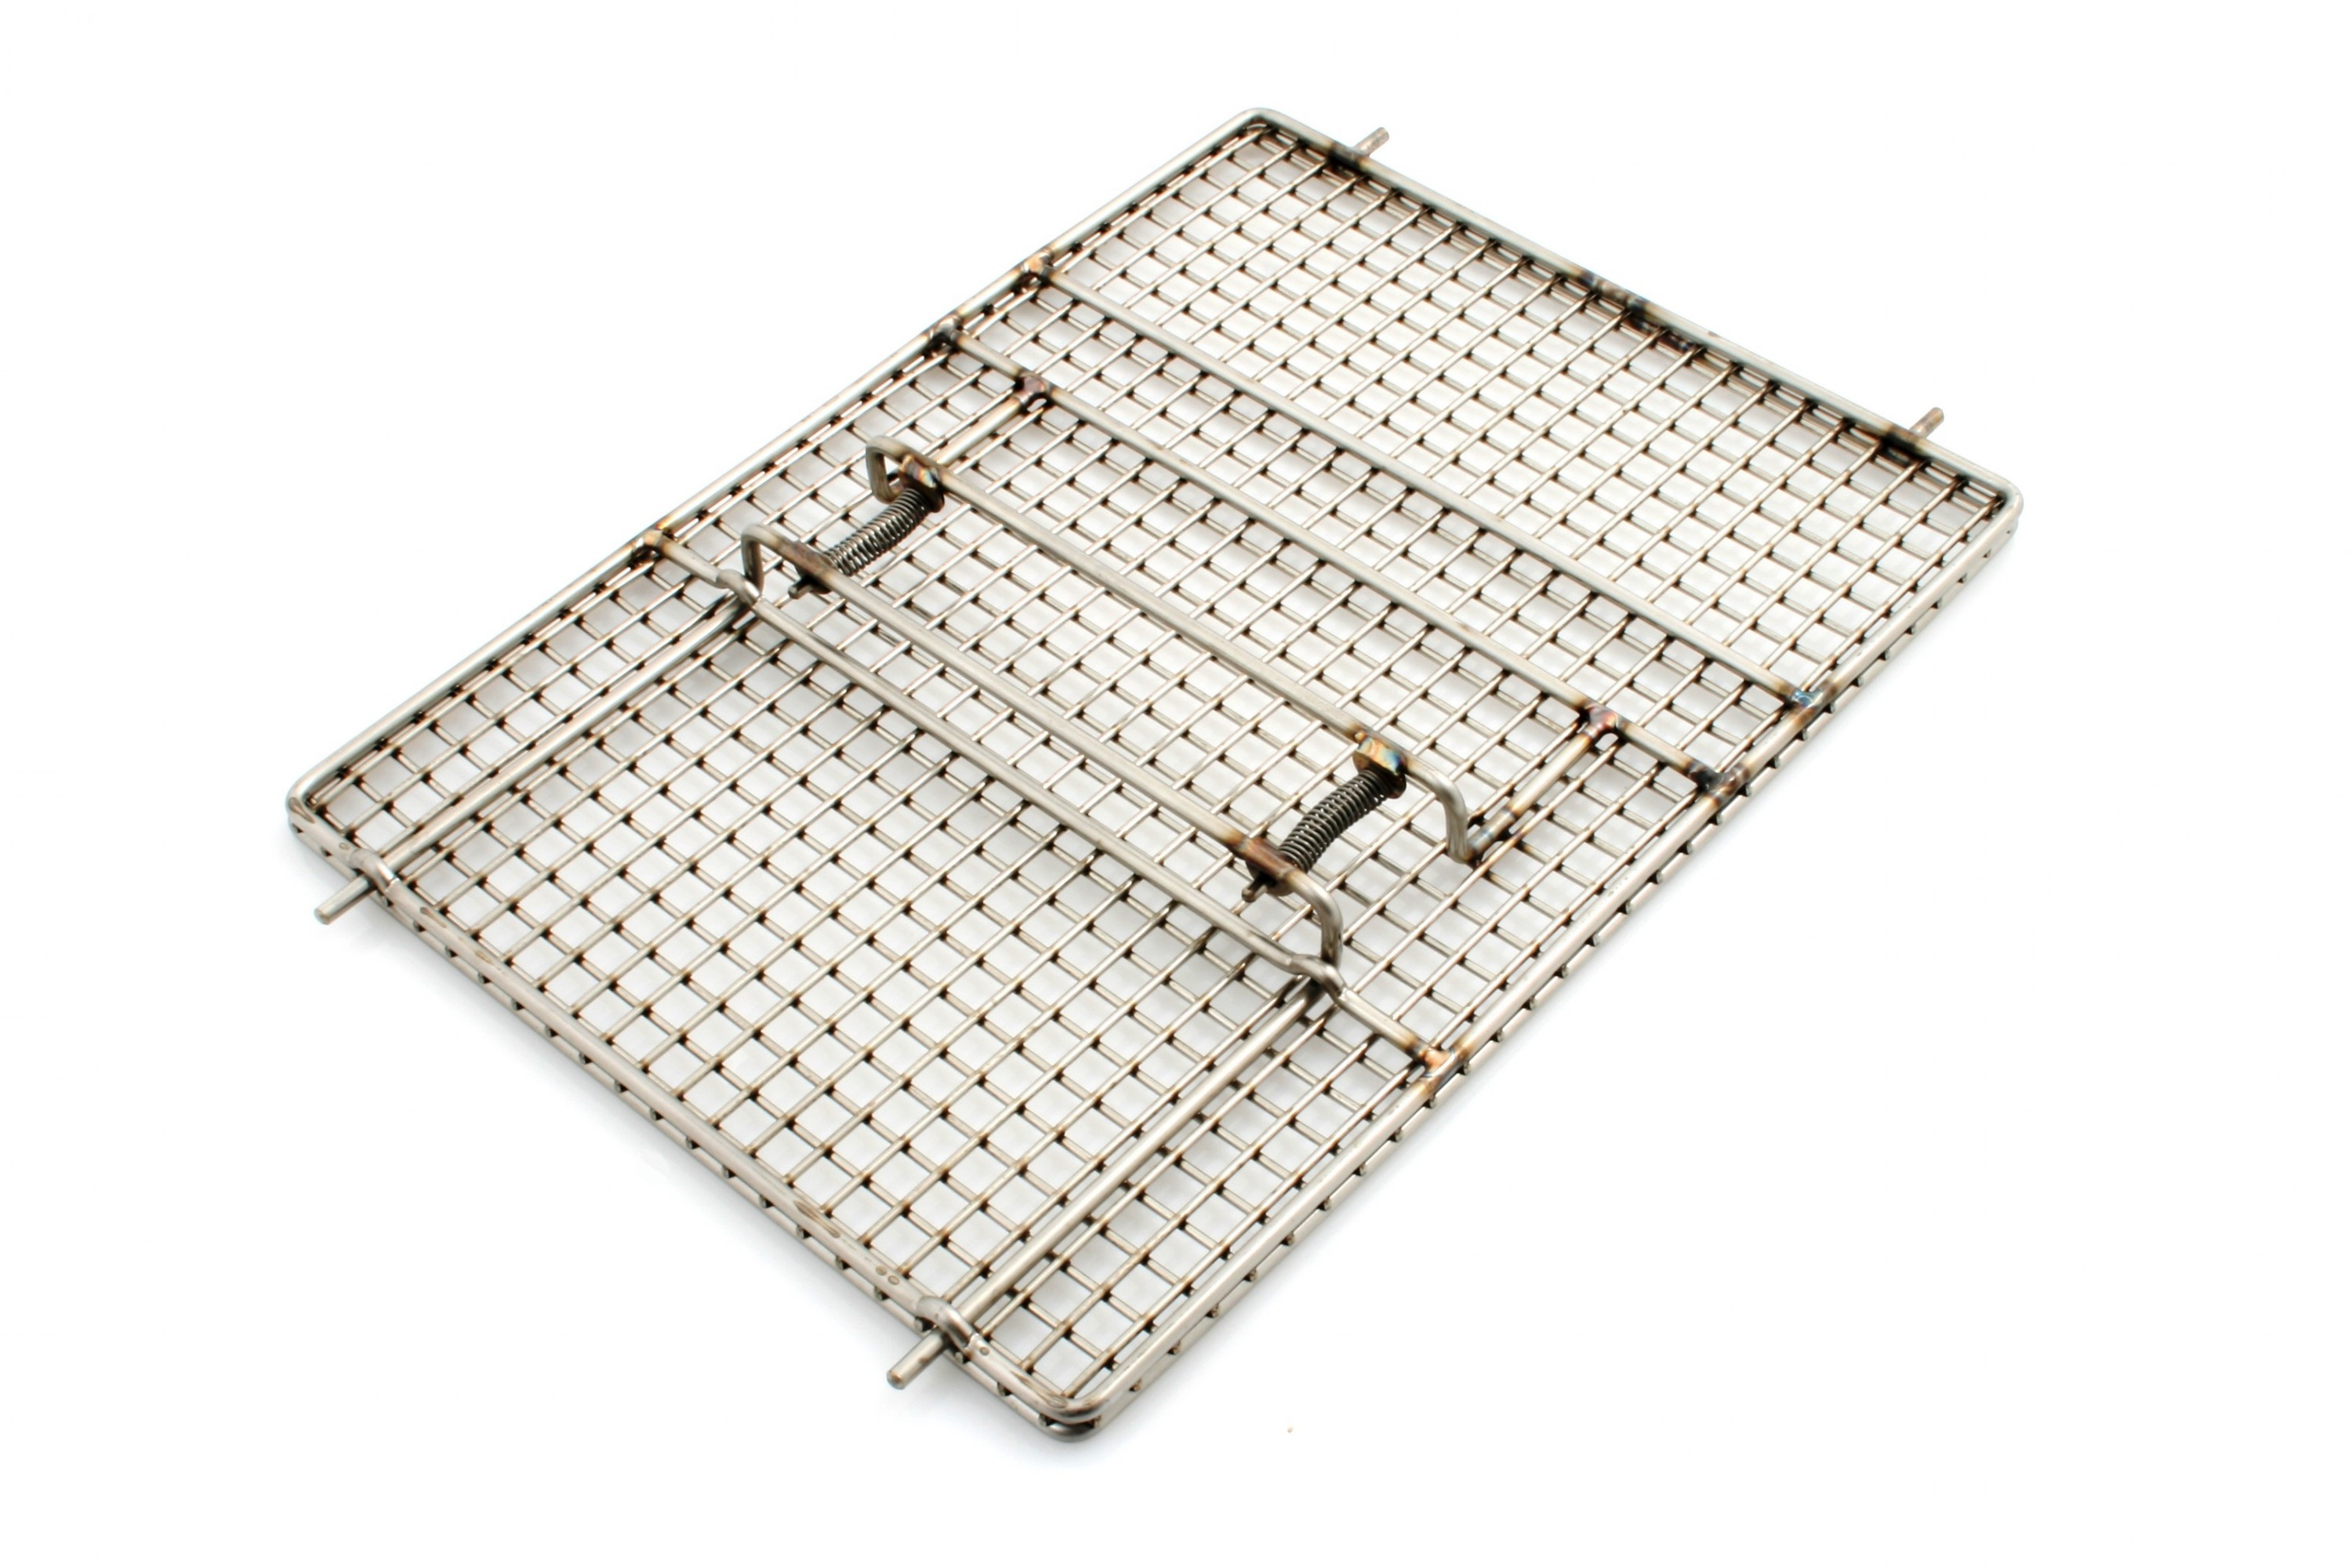 Lid for industrial washing basket - small standard c/c 12